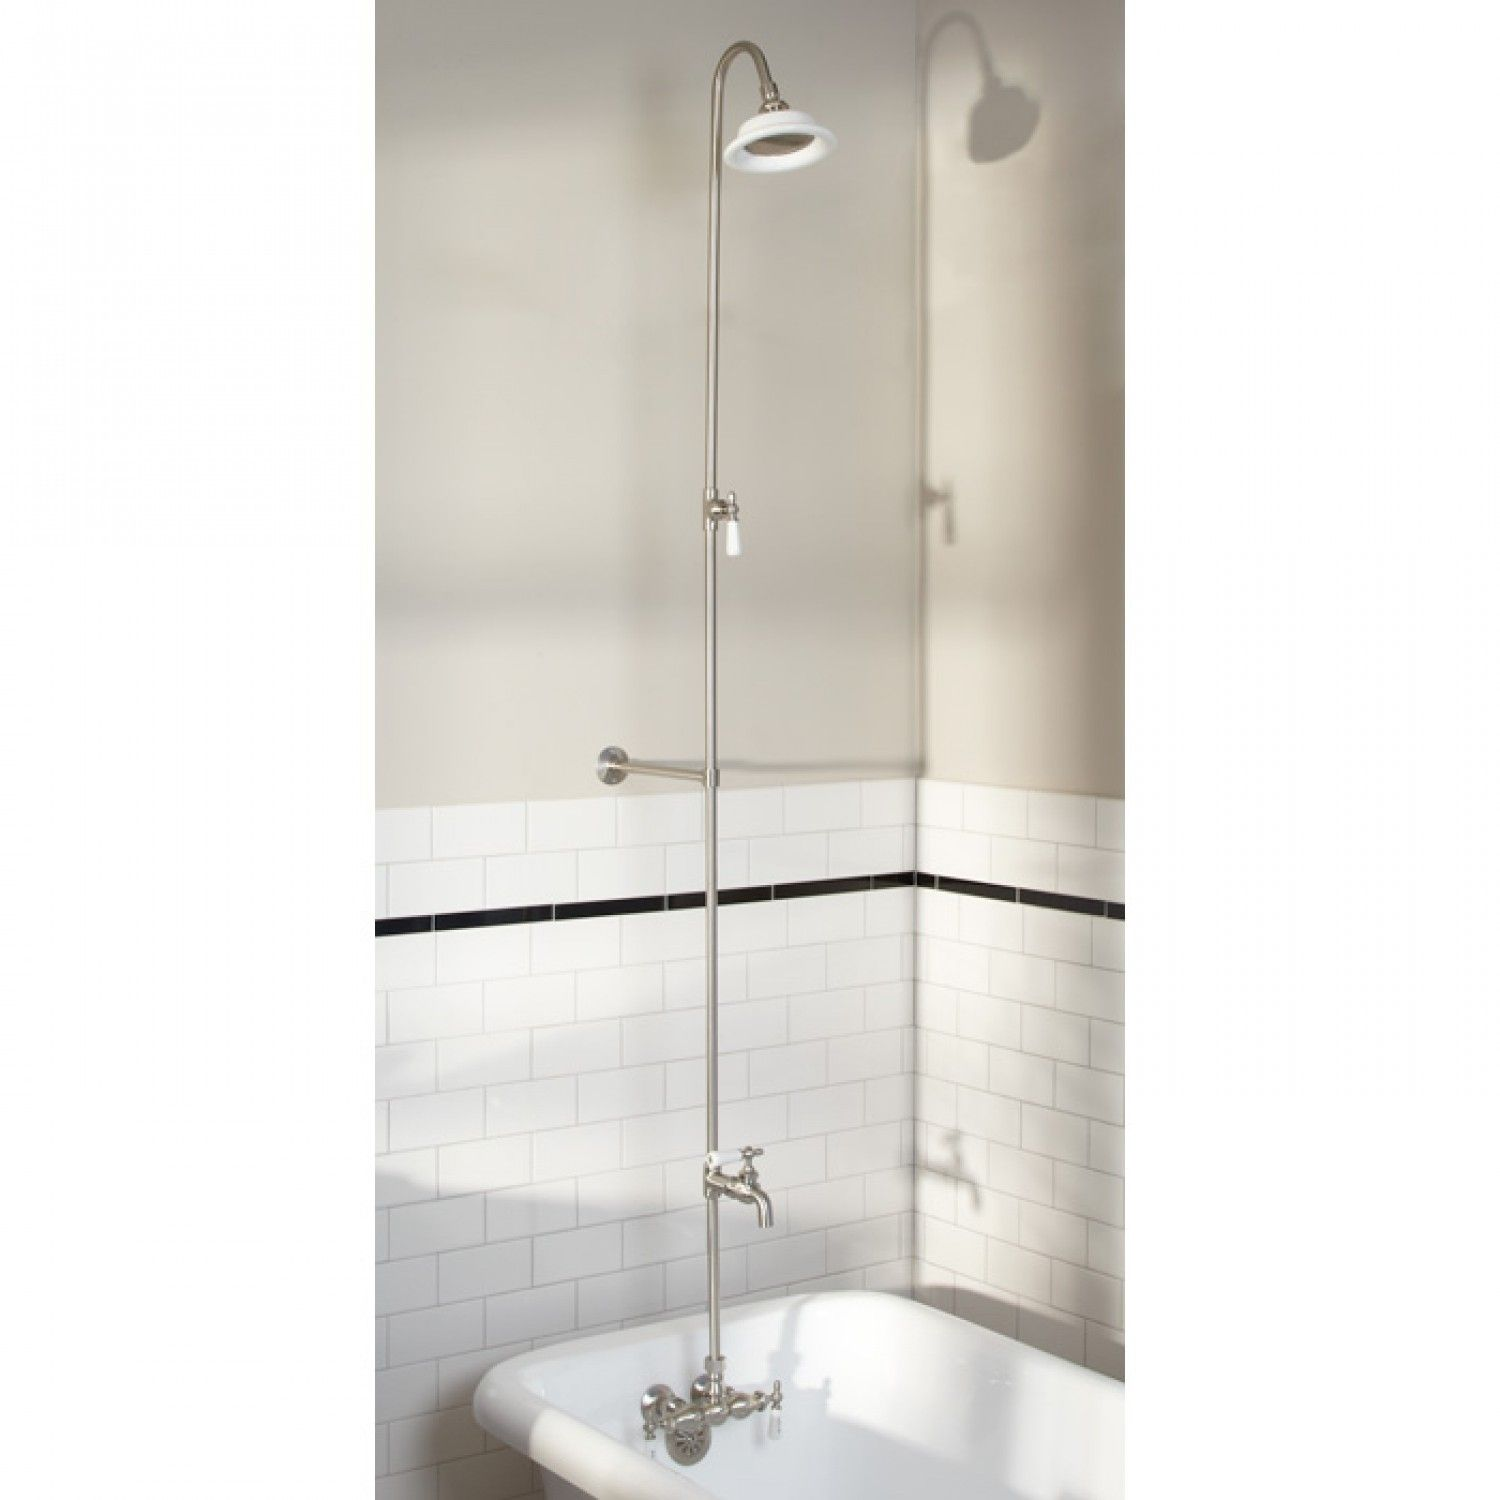 Wall Shower Set With Exposed Pipe Riser and Tub Filler | Shower set ...